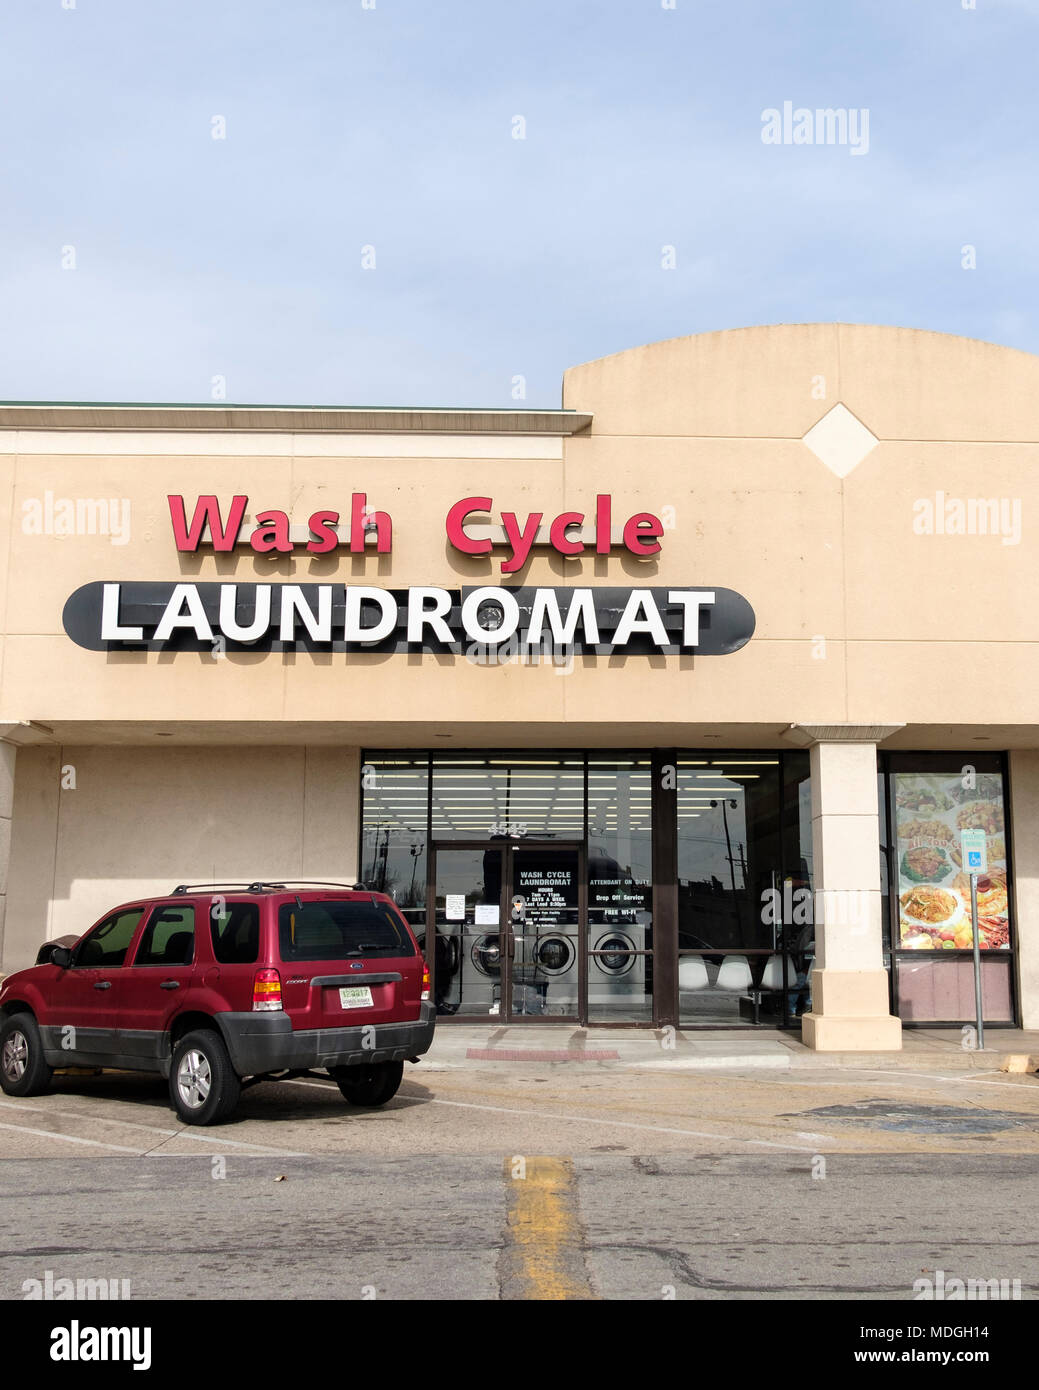 The storefront of wash cycle laundromat a do it yourself laundry in the storefront of wash cycle laundromat a do it yourself laundry in oklahoma city oklahoma usa solutioingenieria Gallery